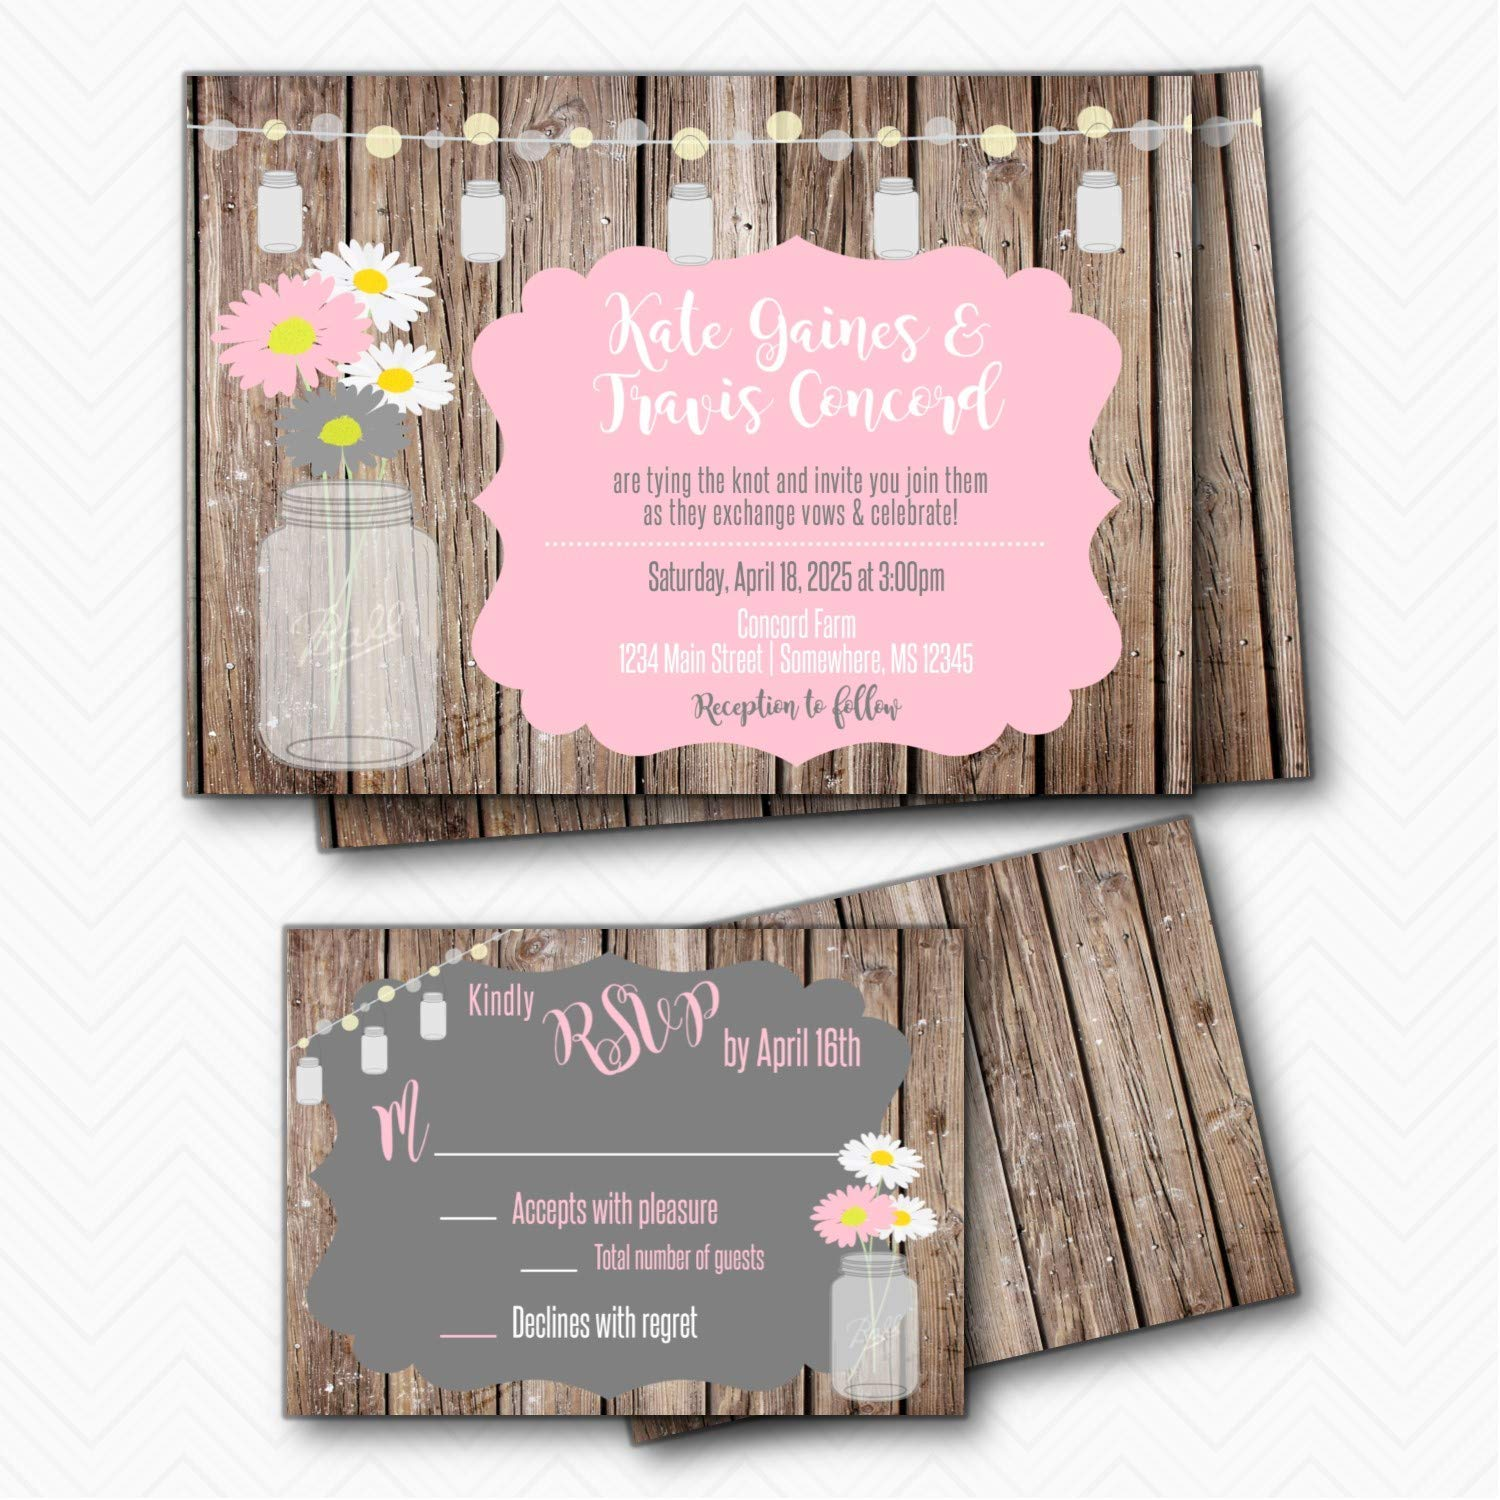 Mason Jar Rustic Wood Mail order cheap OFFicial Daisy Wedding with w Invitation RSVP set